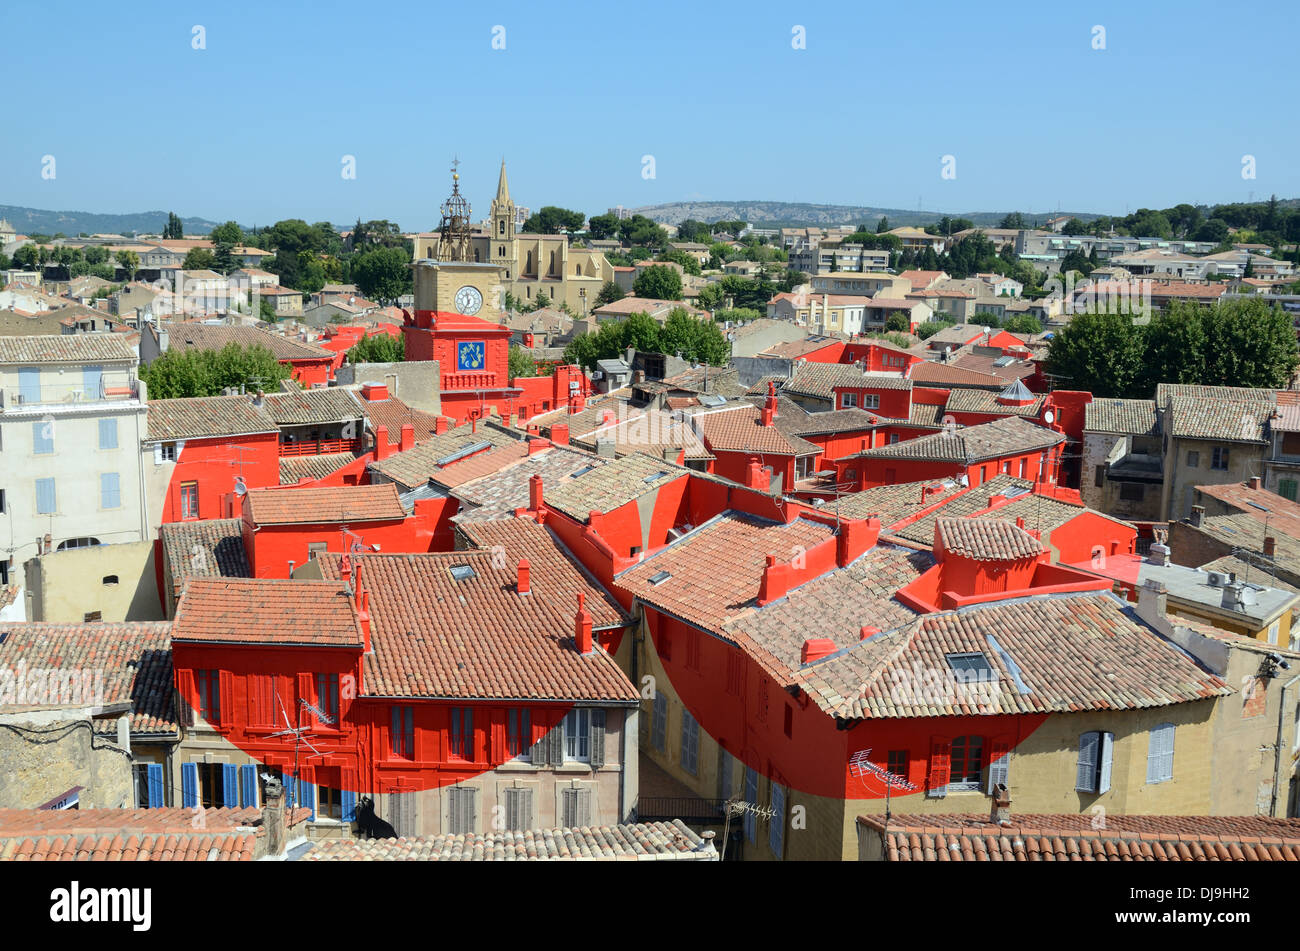 View over salon de provence painted red art installation for Pmi salon de provence